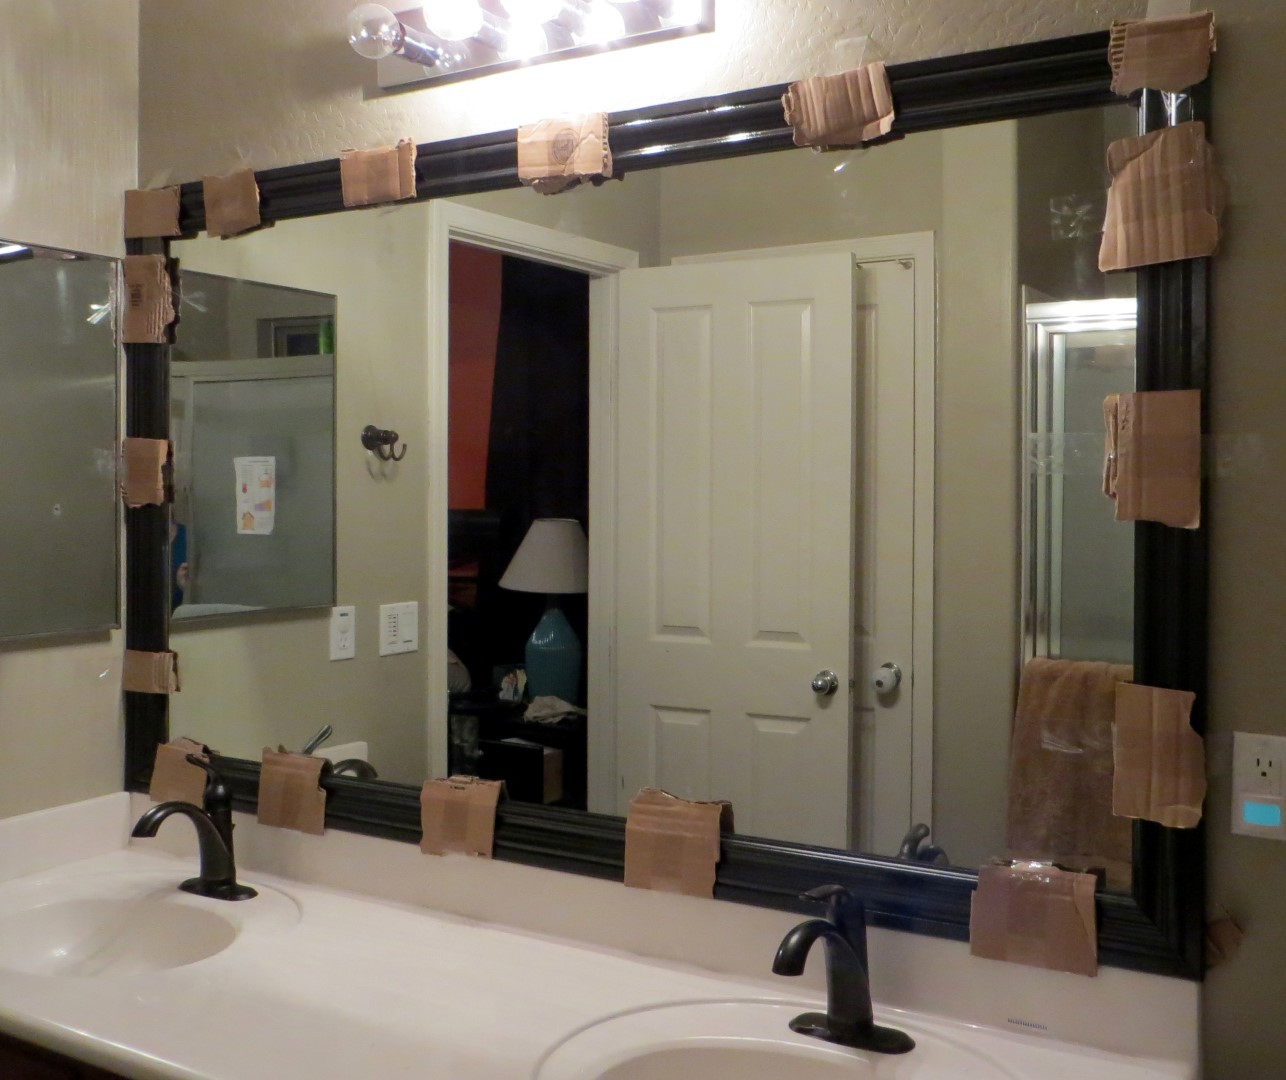 How to frame a mirror the builder 39 s installed a mom 39 s take Frames for bathroom wall mirrors